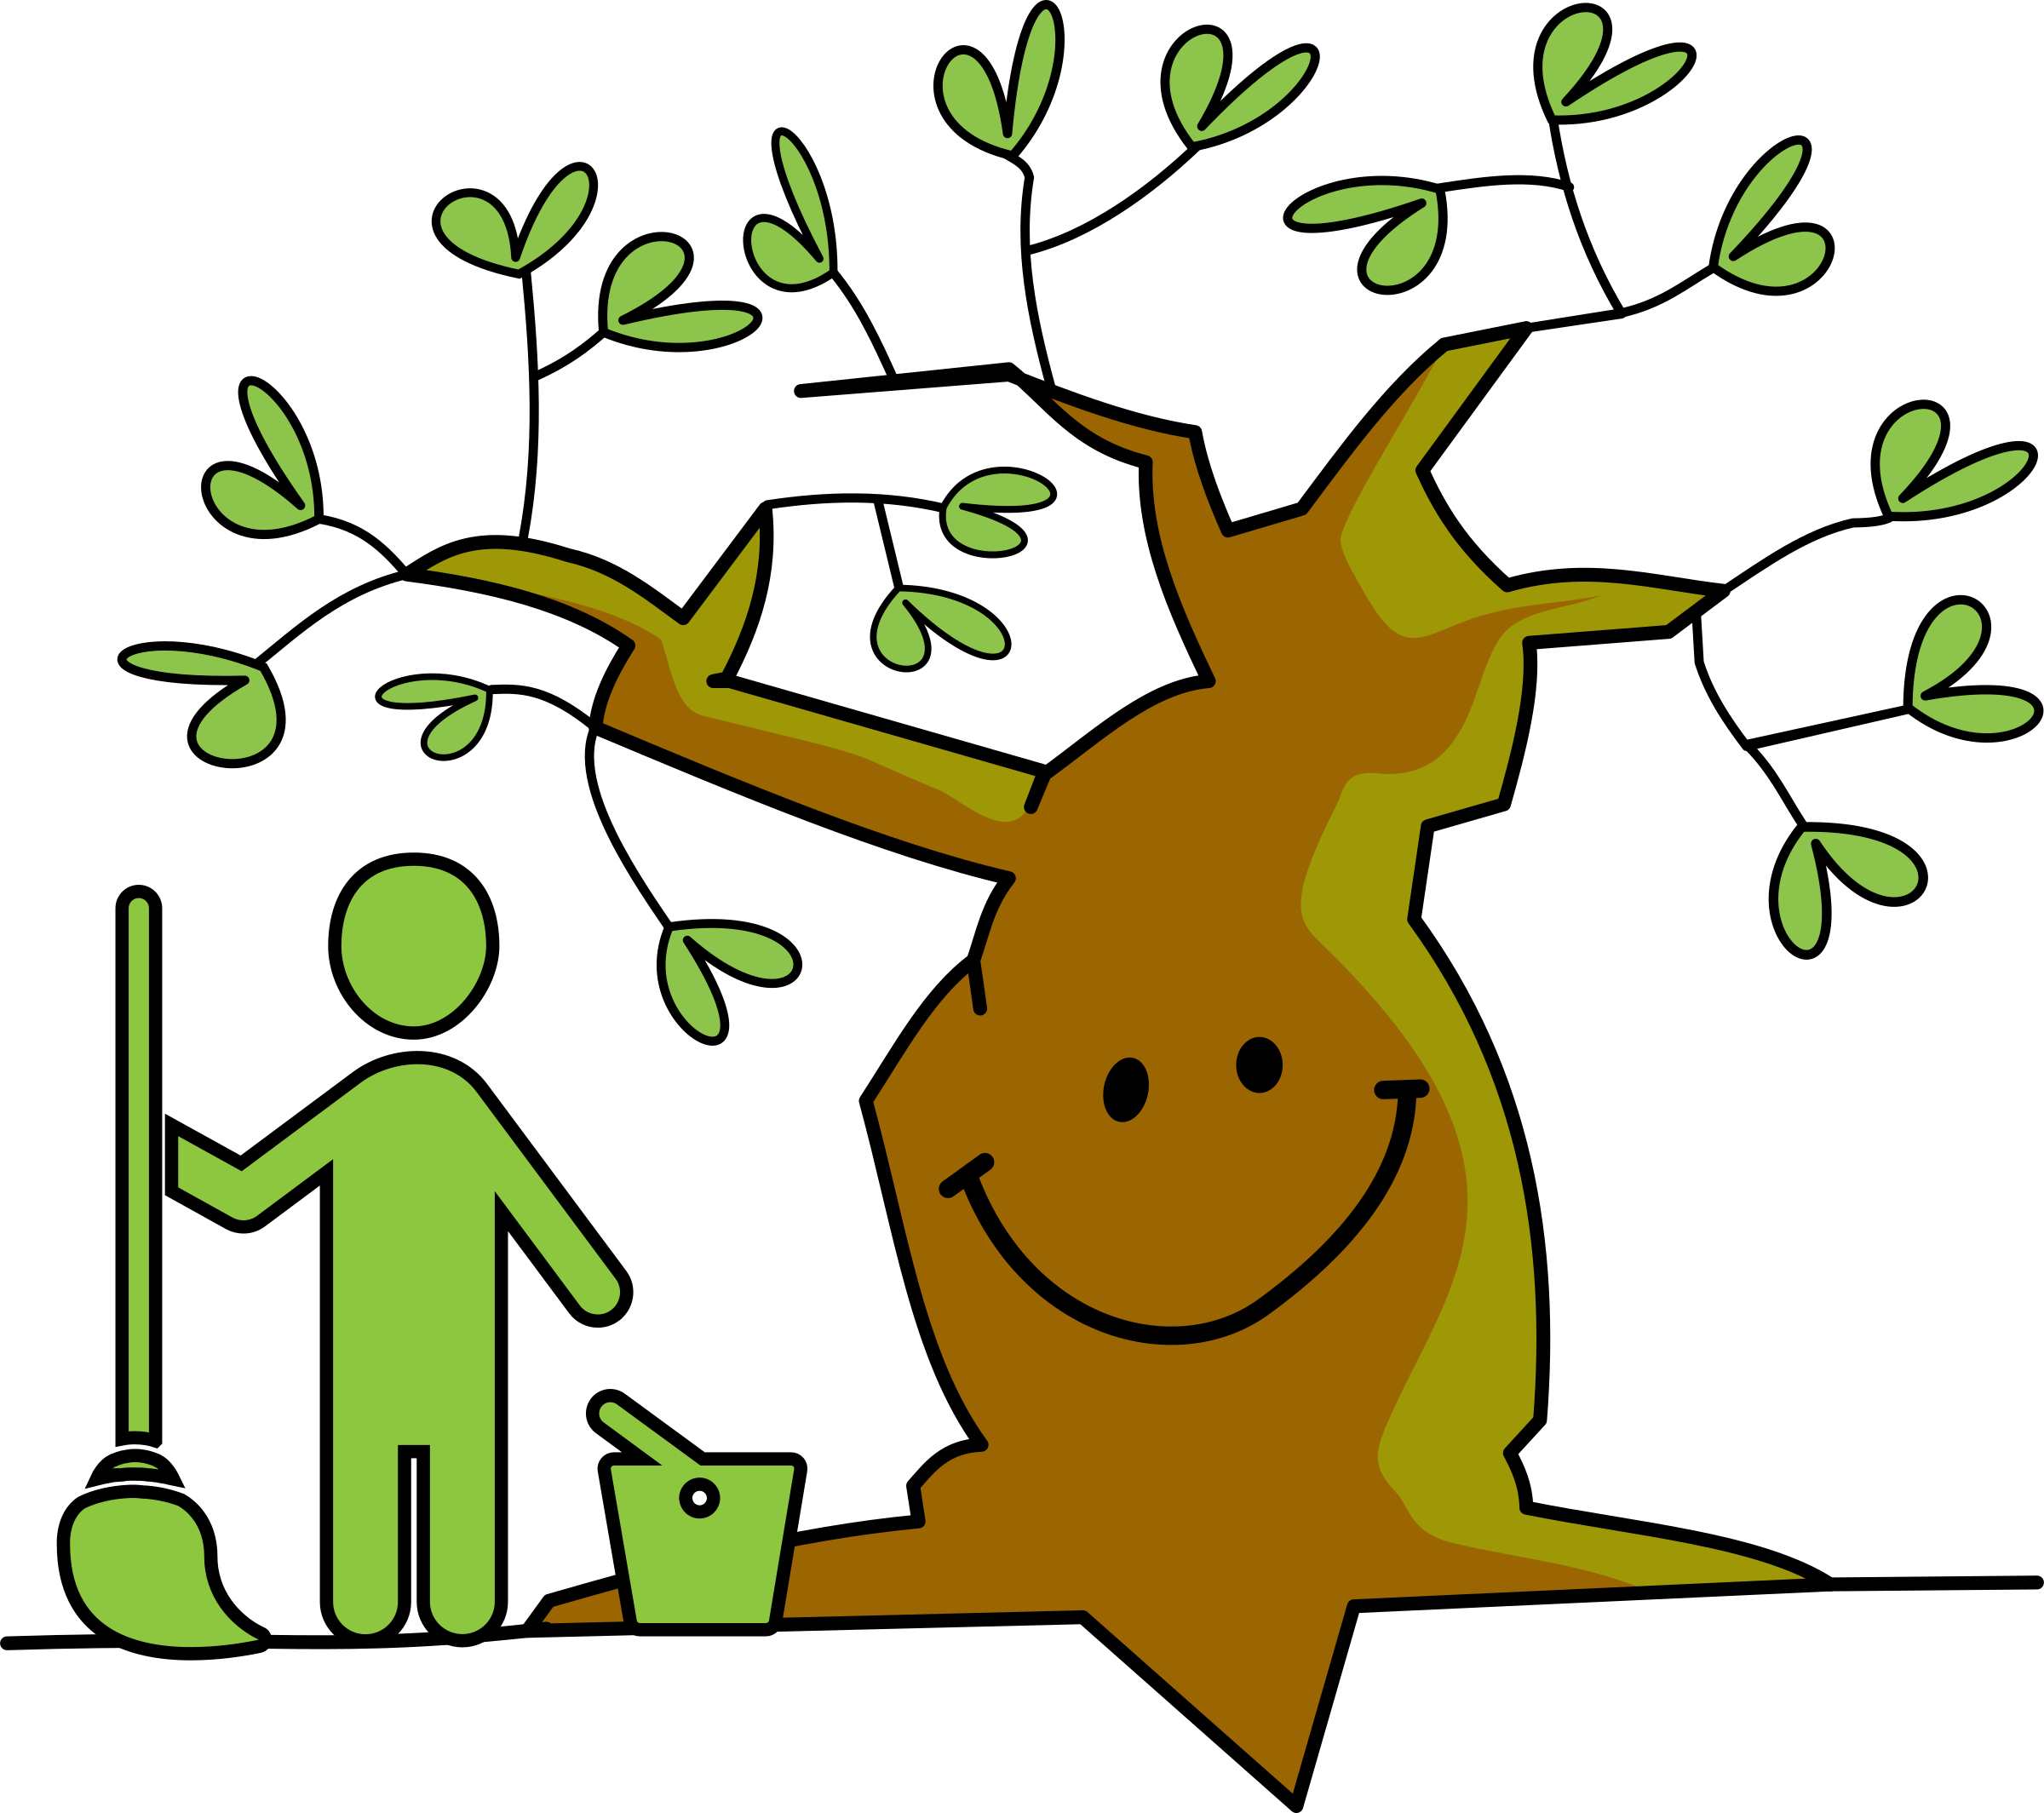 Clean nature big image. Clipart smile tree